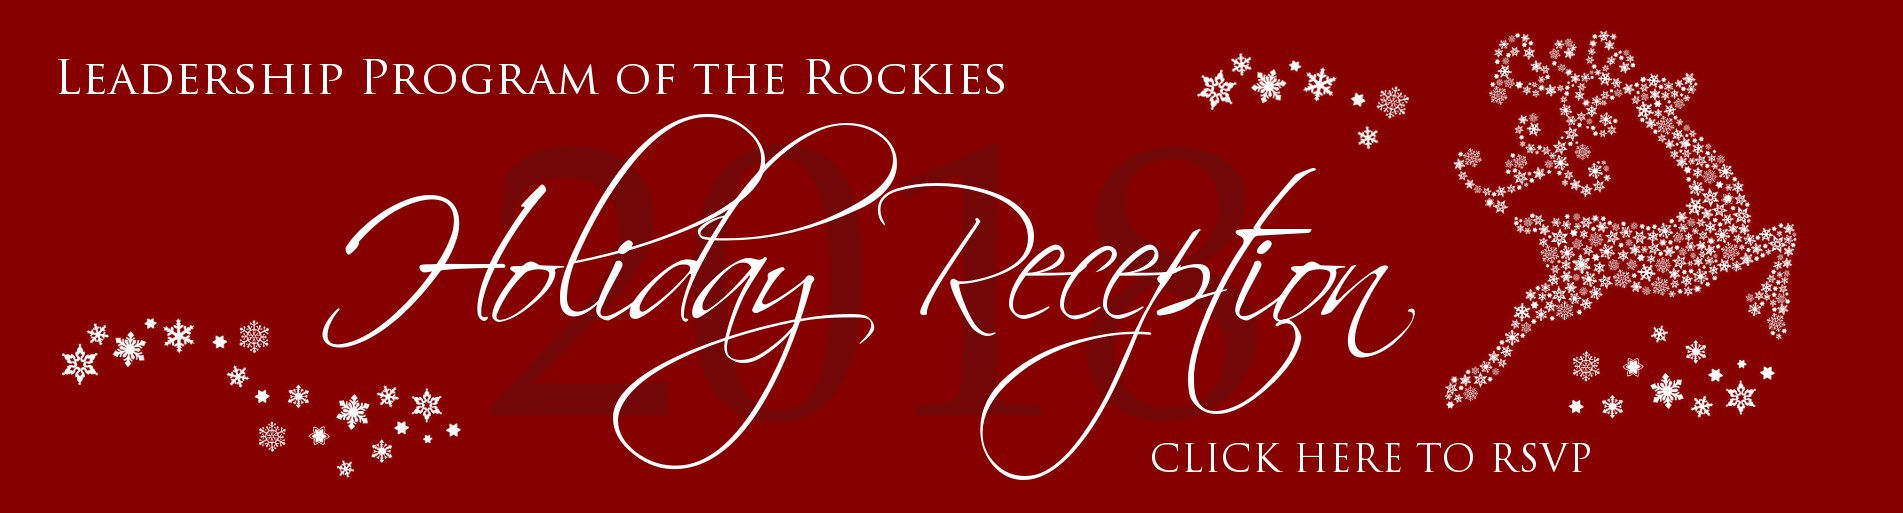 2018 Holiday Reception RSVP